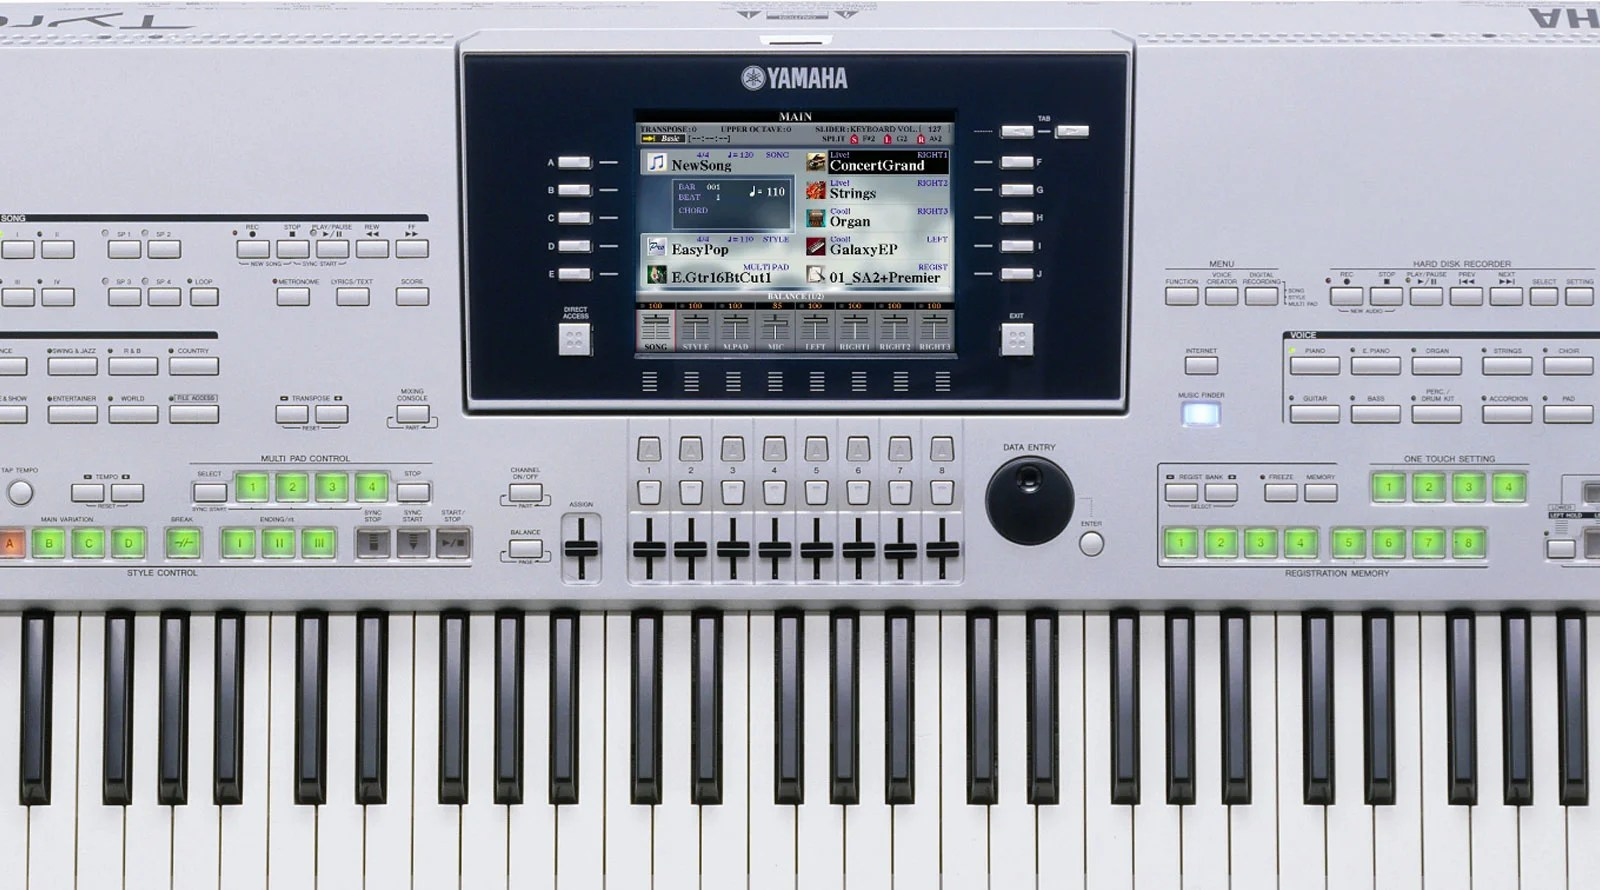 Yamaha Tyros3 Keyboard Review – Gaming & Technology